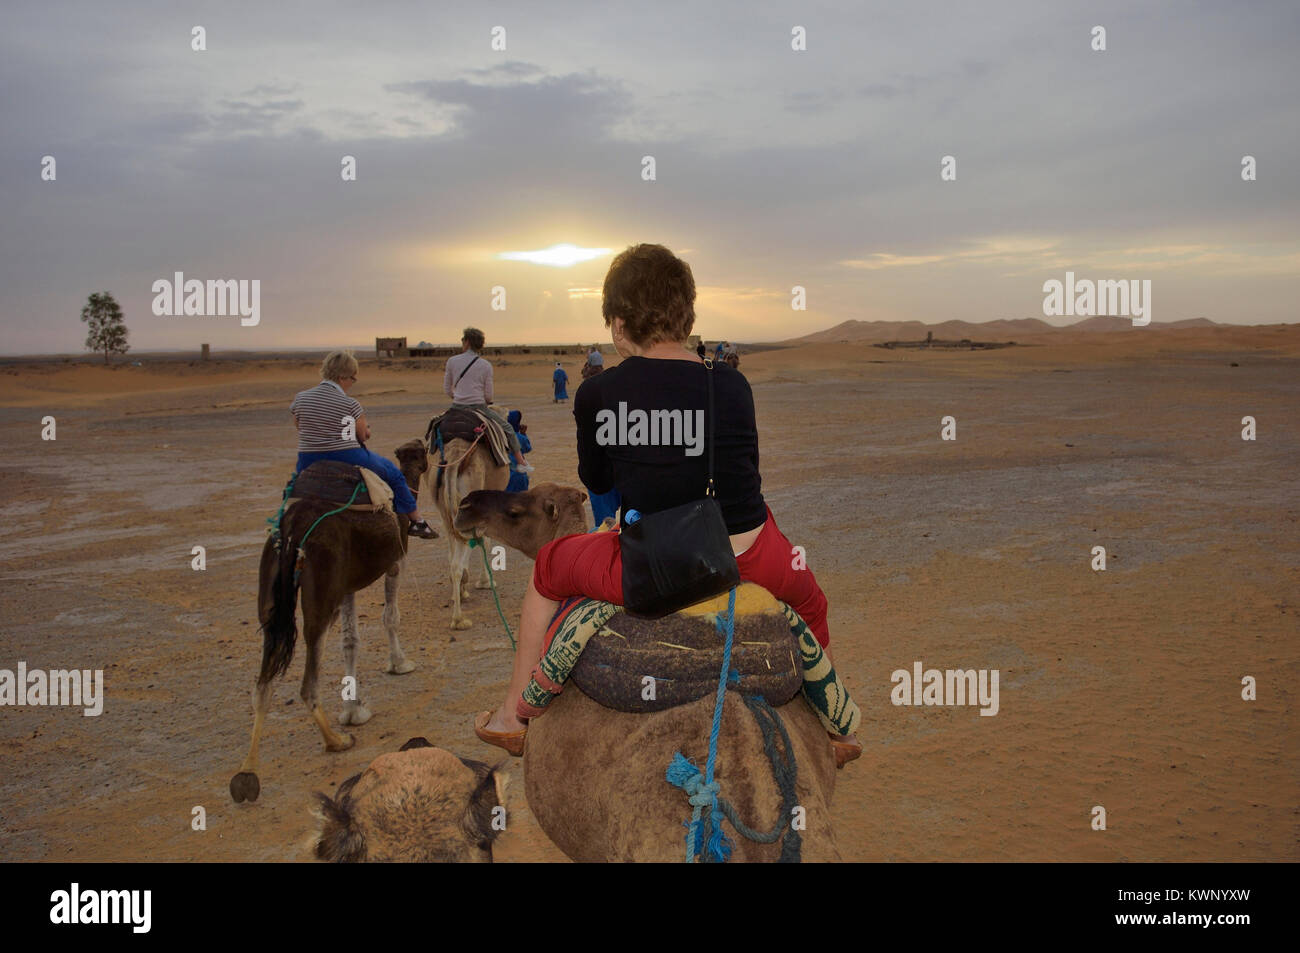 camel excursion to the sand dunes at Merzouga, Morocco, North Africa Stock Photo